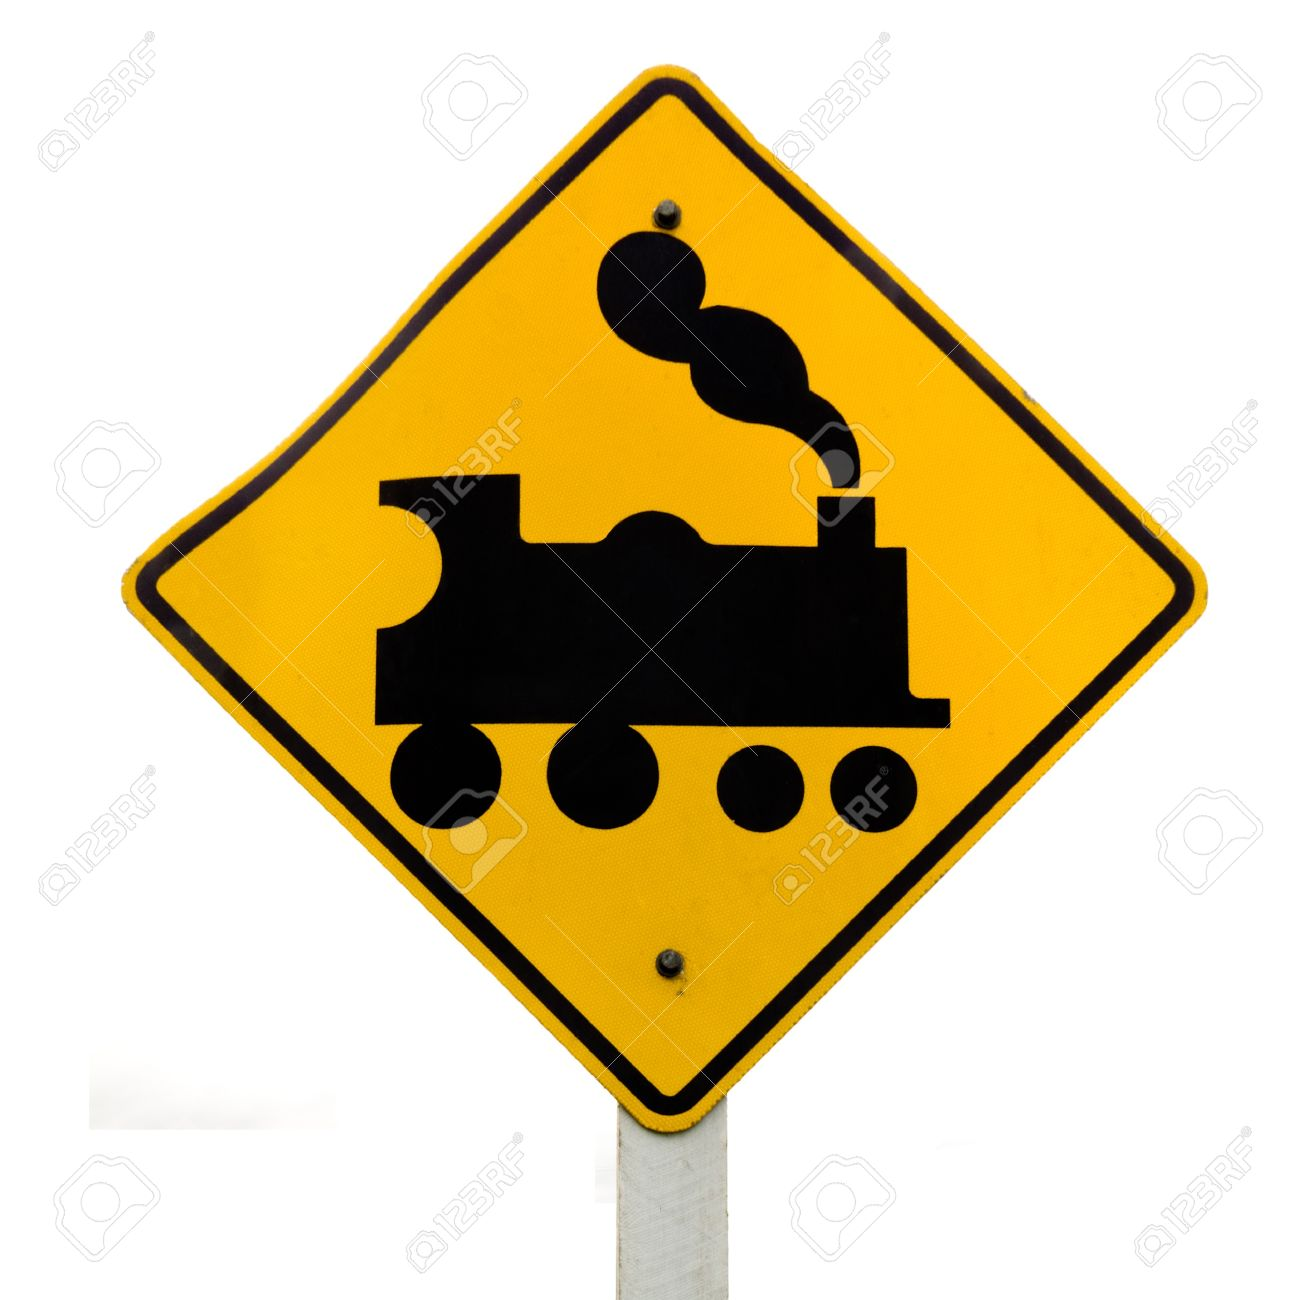 Railroad Crossing Roadsign, No Barrier Or Gate Ahead On Road.